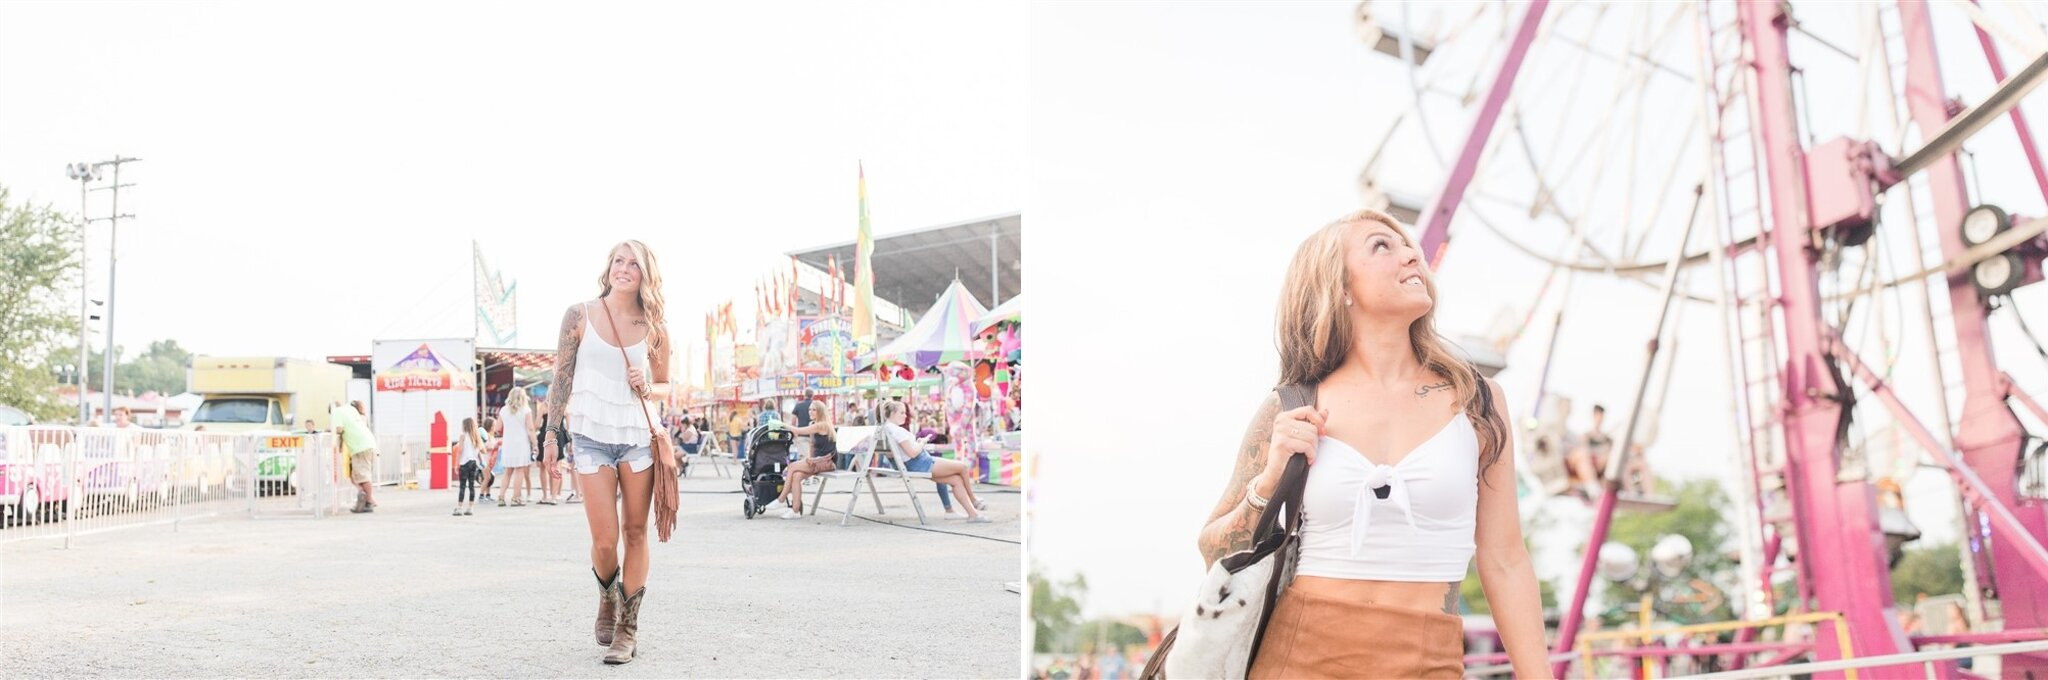 Fun photoshoot idea at the Outagamie County Fair in Seymour, WI. I love photos by the ferris wheel.